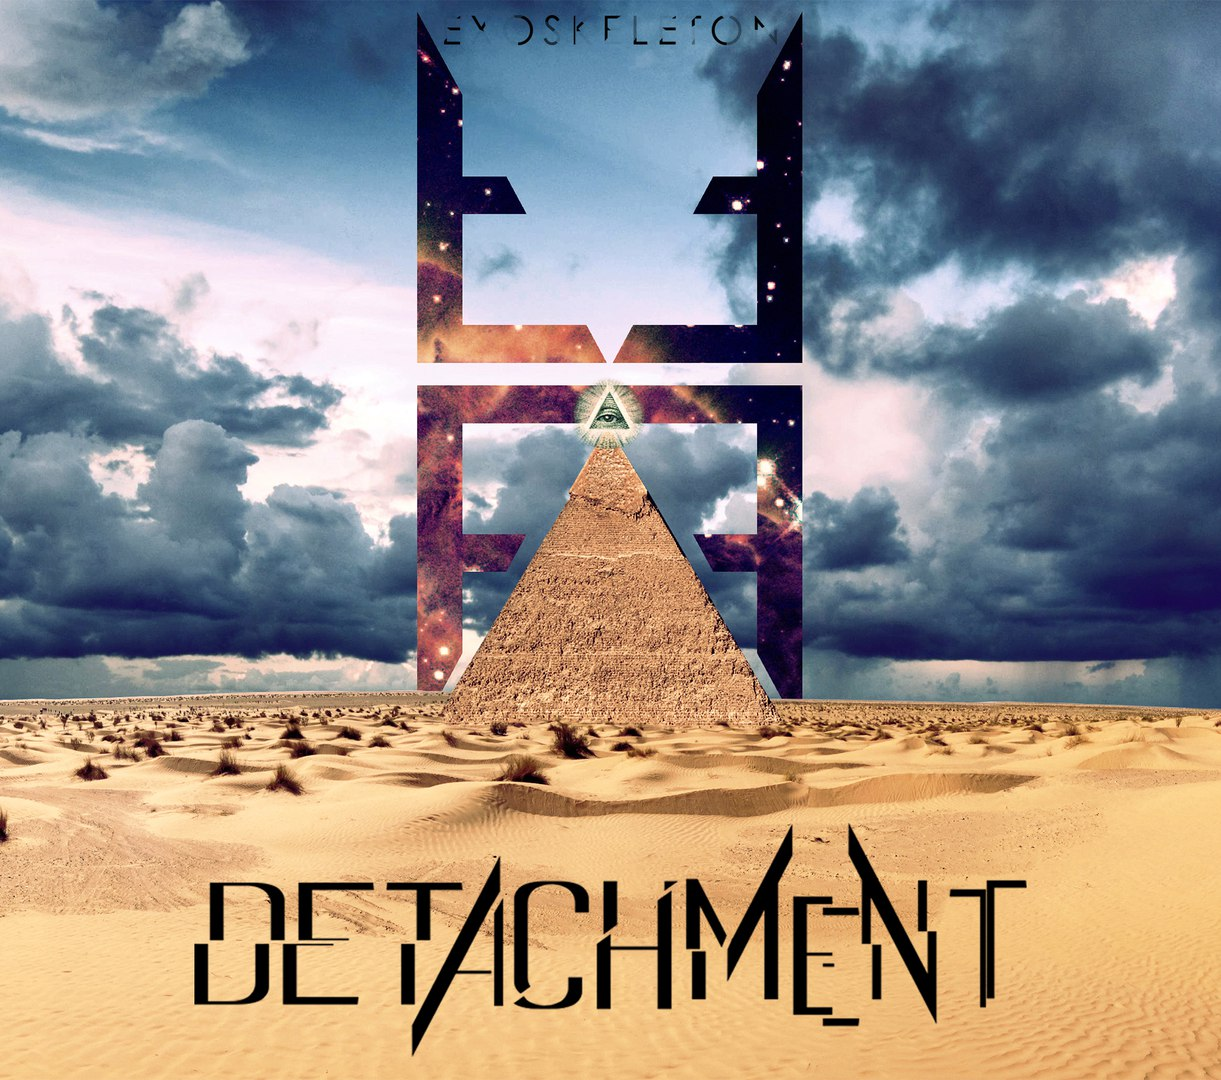 ExoSkeleton - Detachment (EP) (2016)